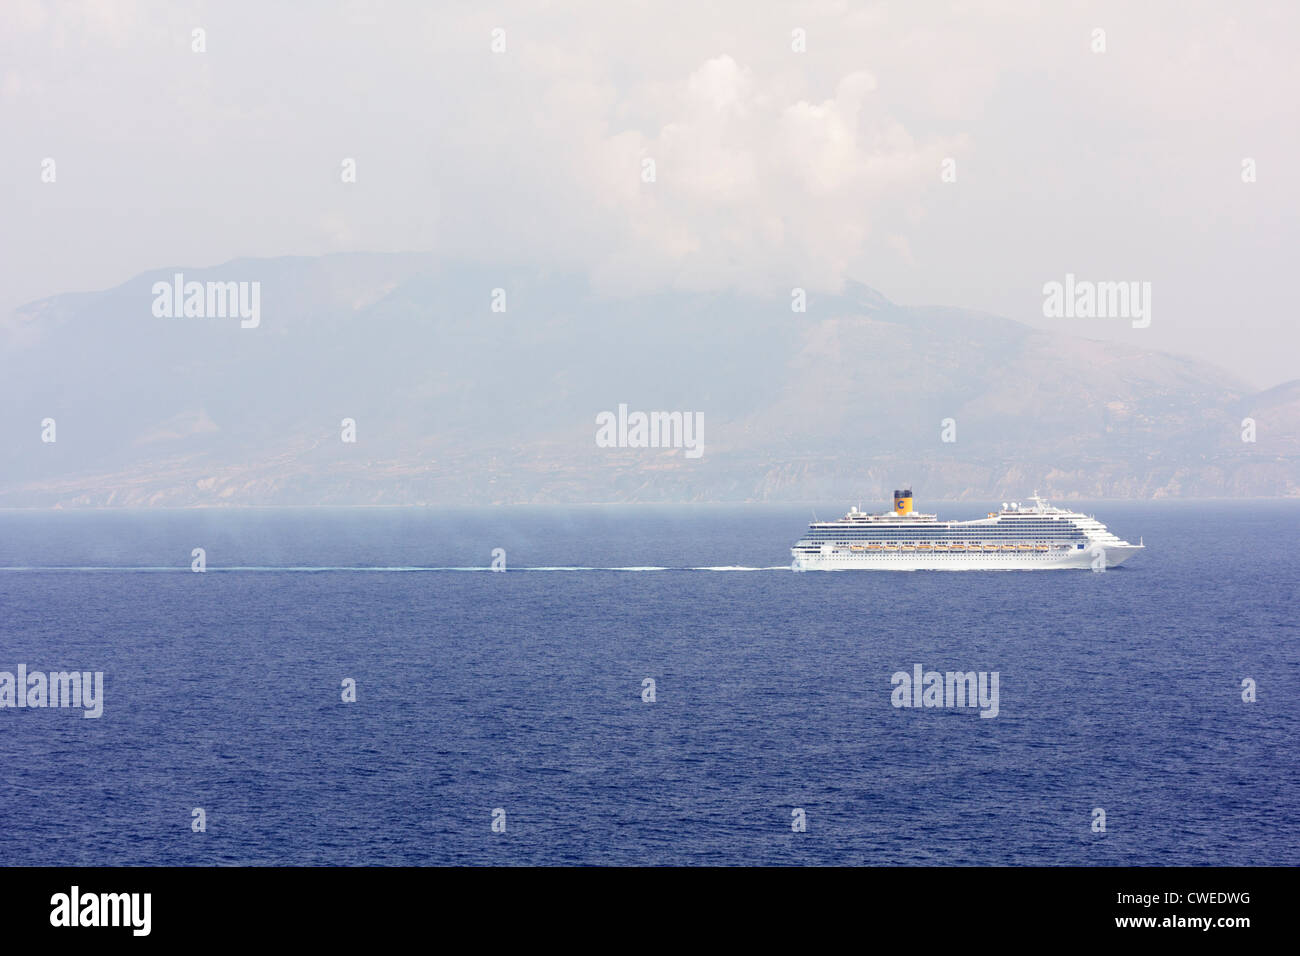 Greece - Sept 7, 2011: The Costa Fortuna cruise ship sailing between the islands of Zakynthos and Kefalonia - Stock Image